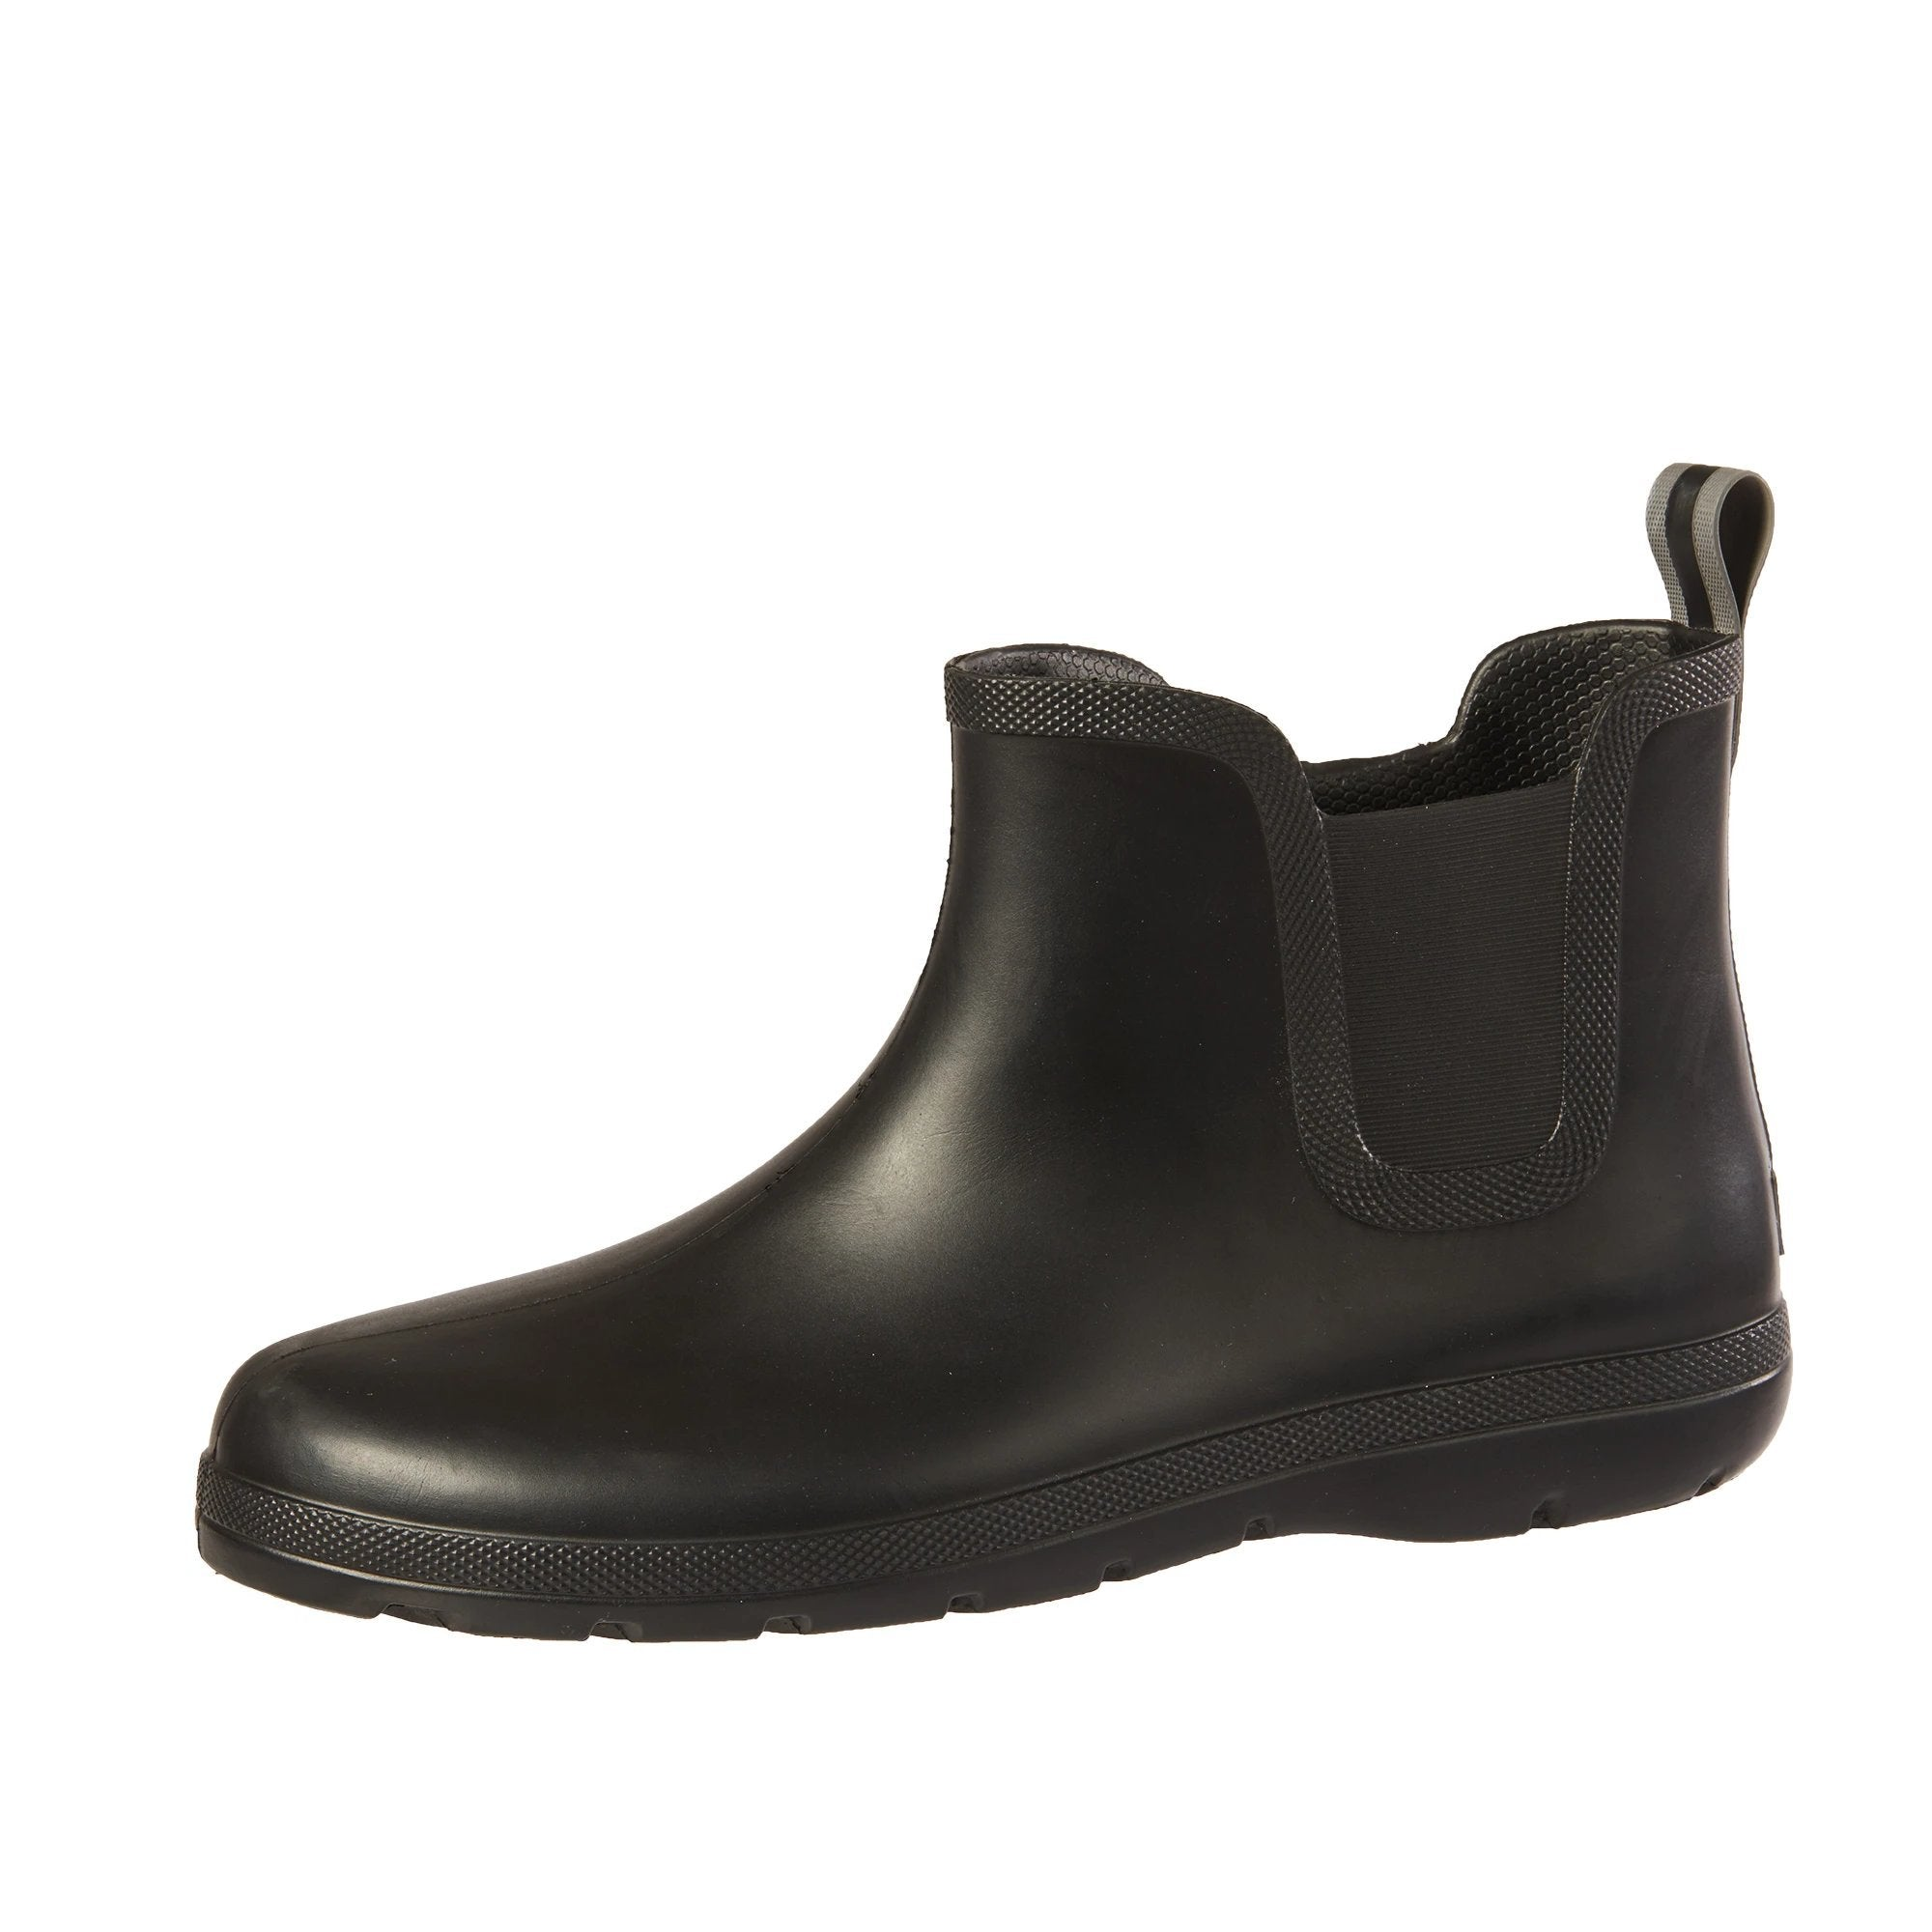 Cirrus™ Men's Chelsea Ankle Rain Boot in Black Left Angled View